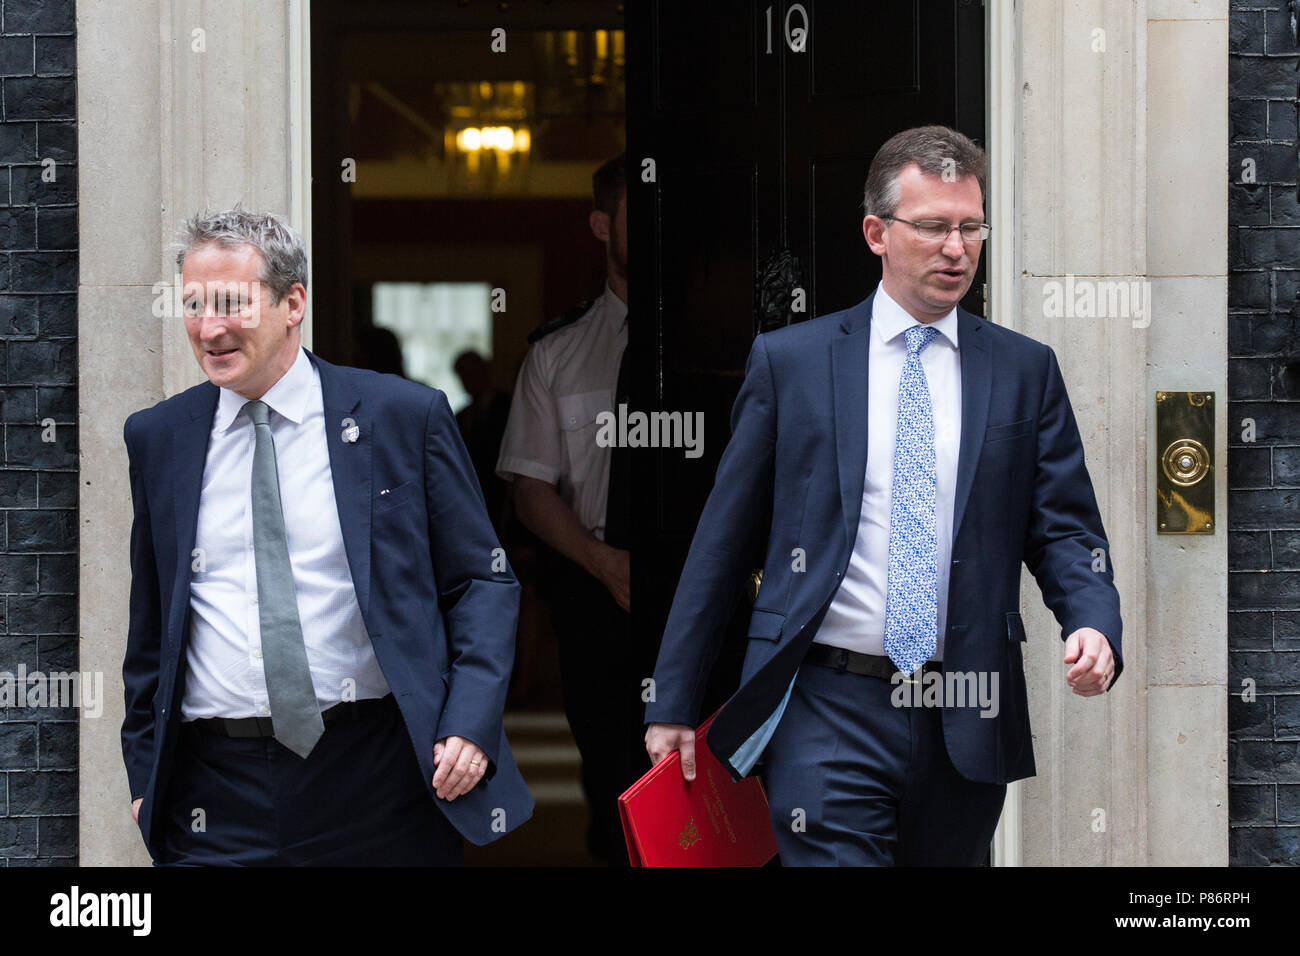 London, UK. 10th July, 2018. Damian Hinds MP, Secretary of State for Education, and Jeremy Wright QC MP, Secretary of State for Digital, Culture, Media and Sport, leave 10 Downing Street following the first Cabinet meeting since the resignations as Ministers of David Davis MP and Boris Johnson MP. Credit: Mark Kerrison/Alamy Live News - Stock Image